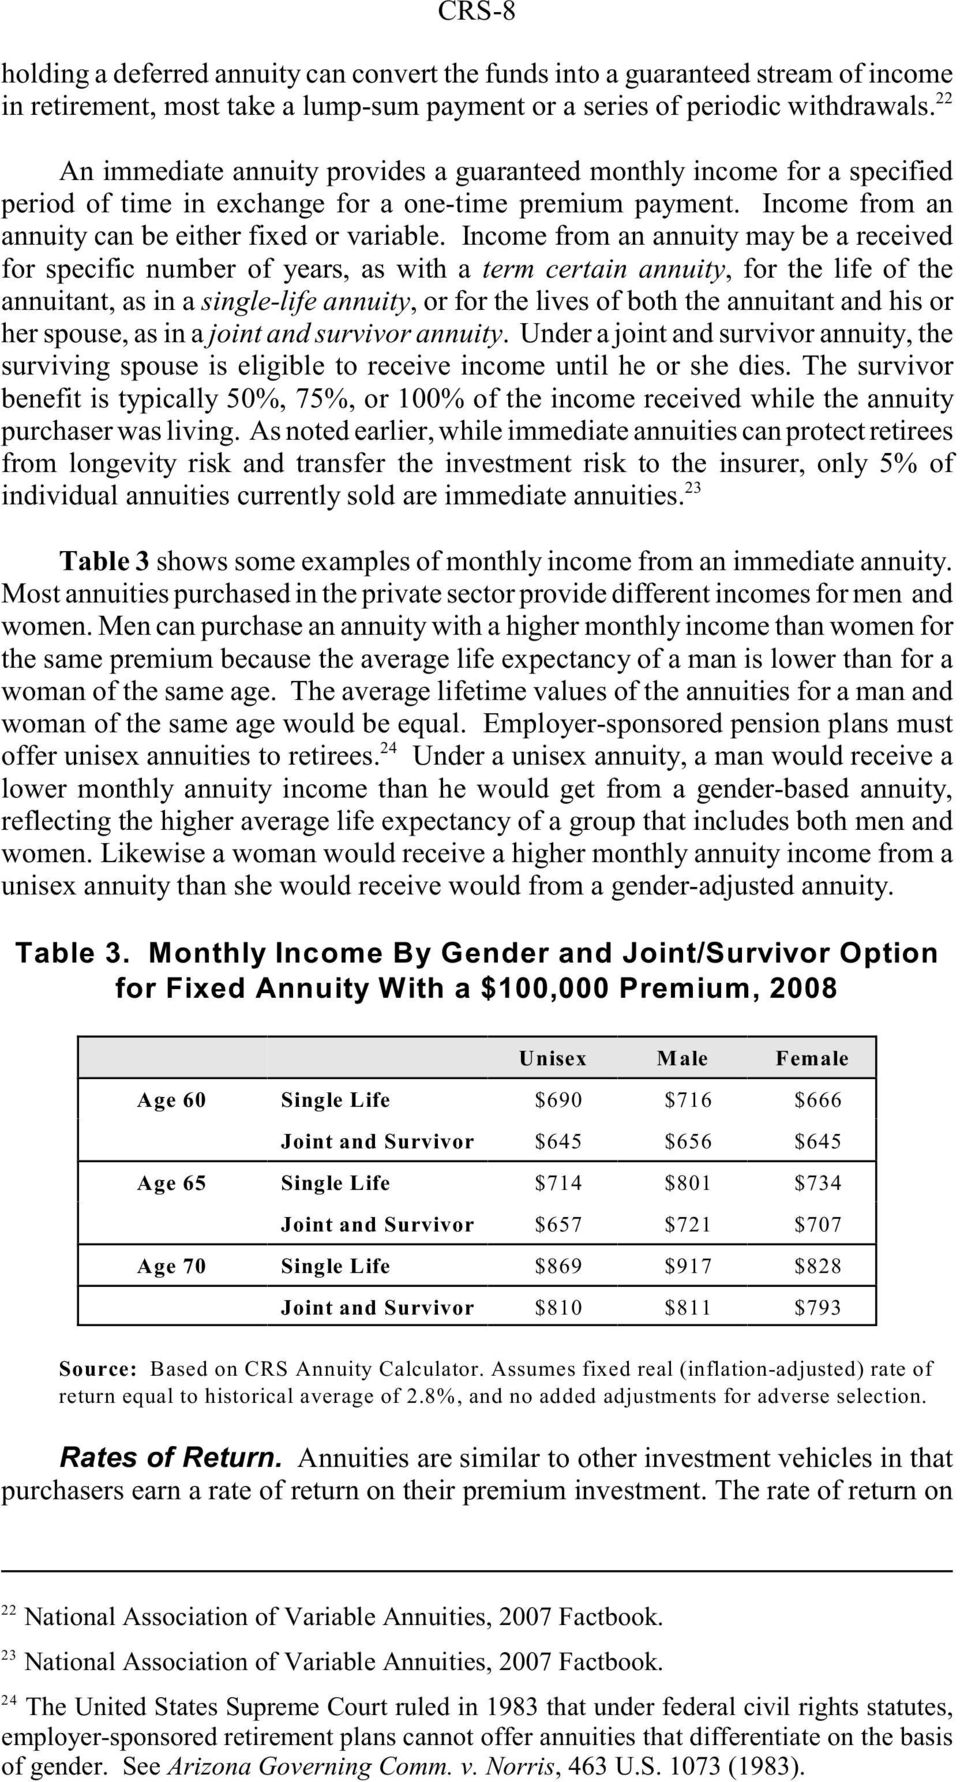 Income from an annuity may be a received for specific number of years, as with a term certain annuity, for the life of the annuitant, as in a single-life annuity, or for the lives of both the